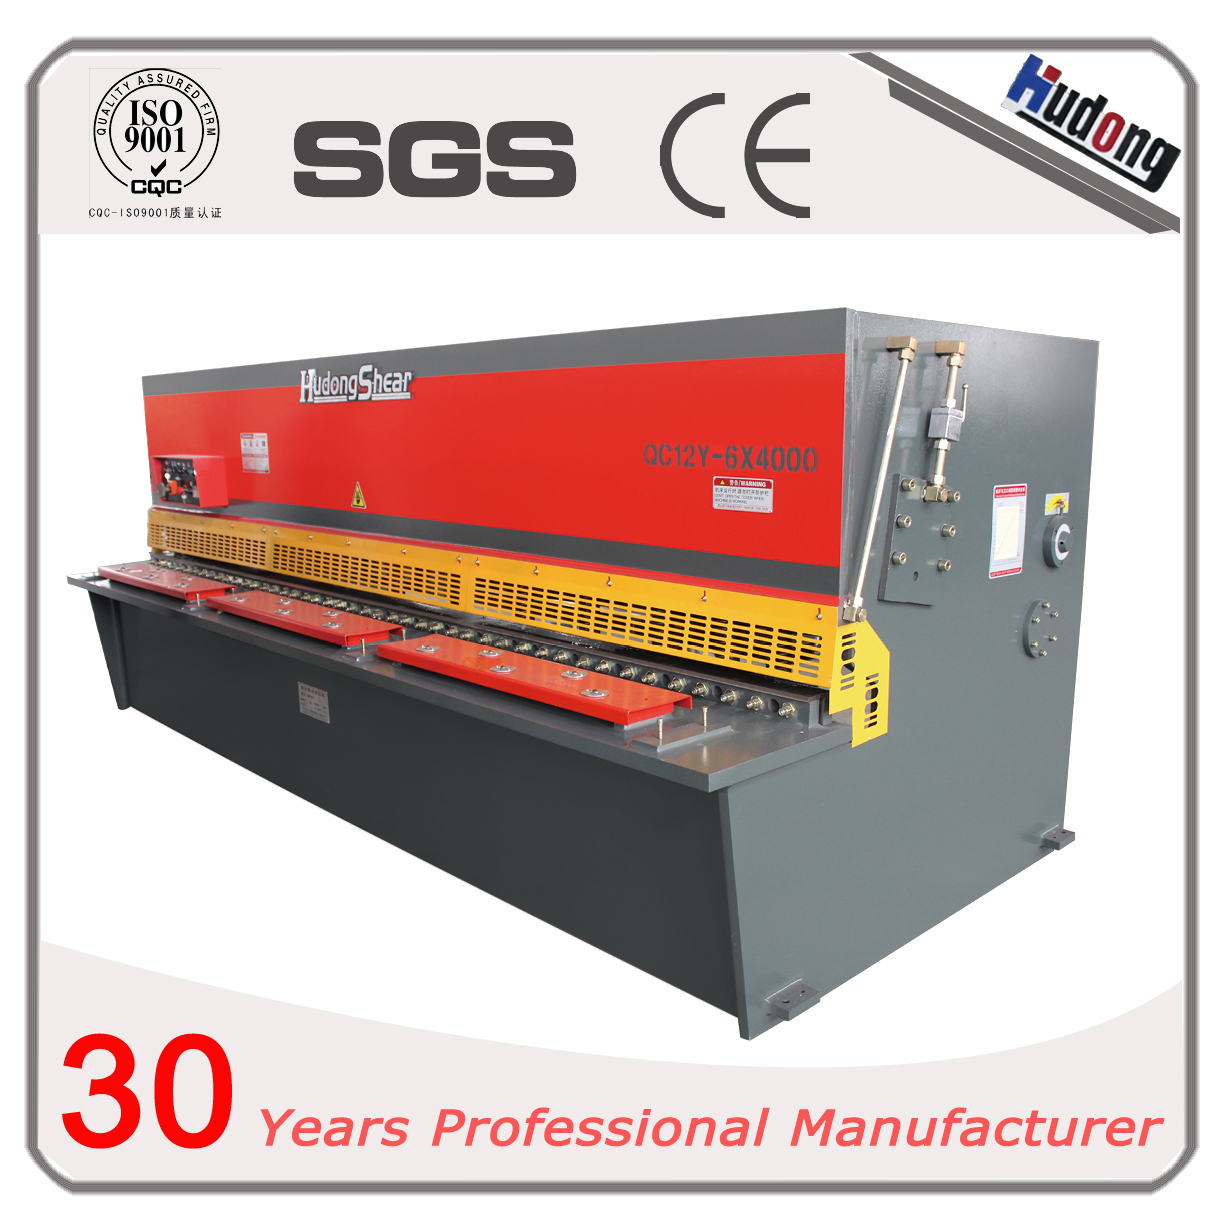 Hudraulic swing beam simple CNC shearing machine